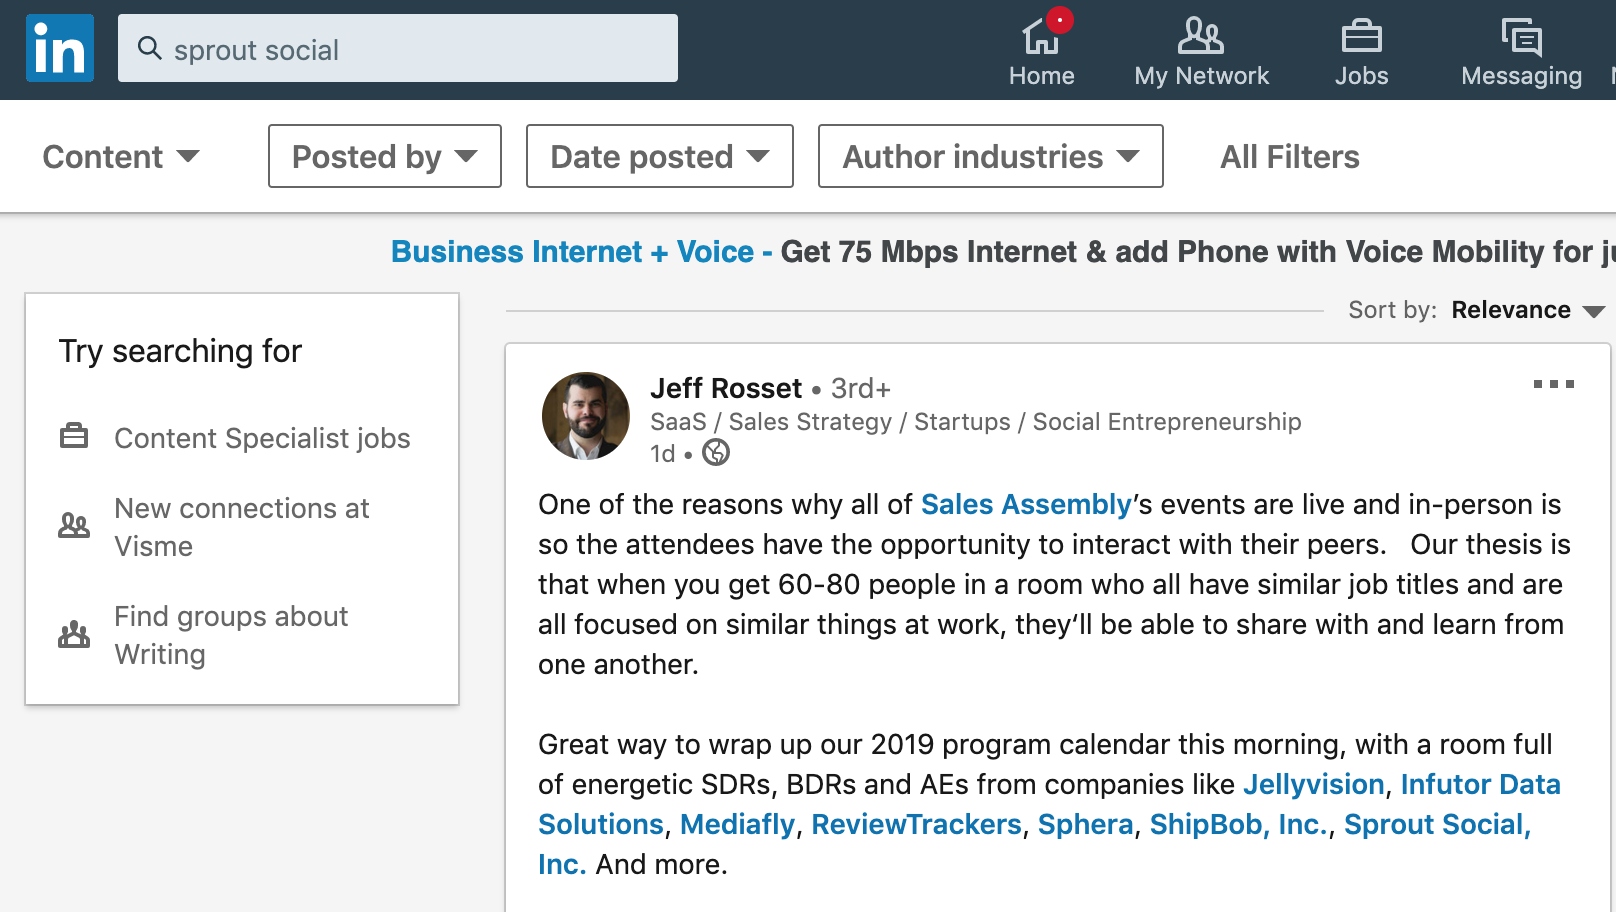 linkedin search for sprout social mentions